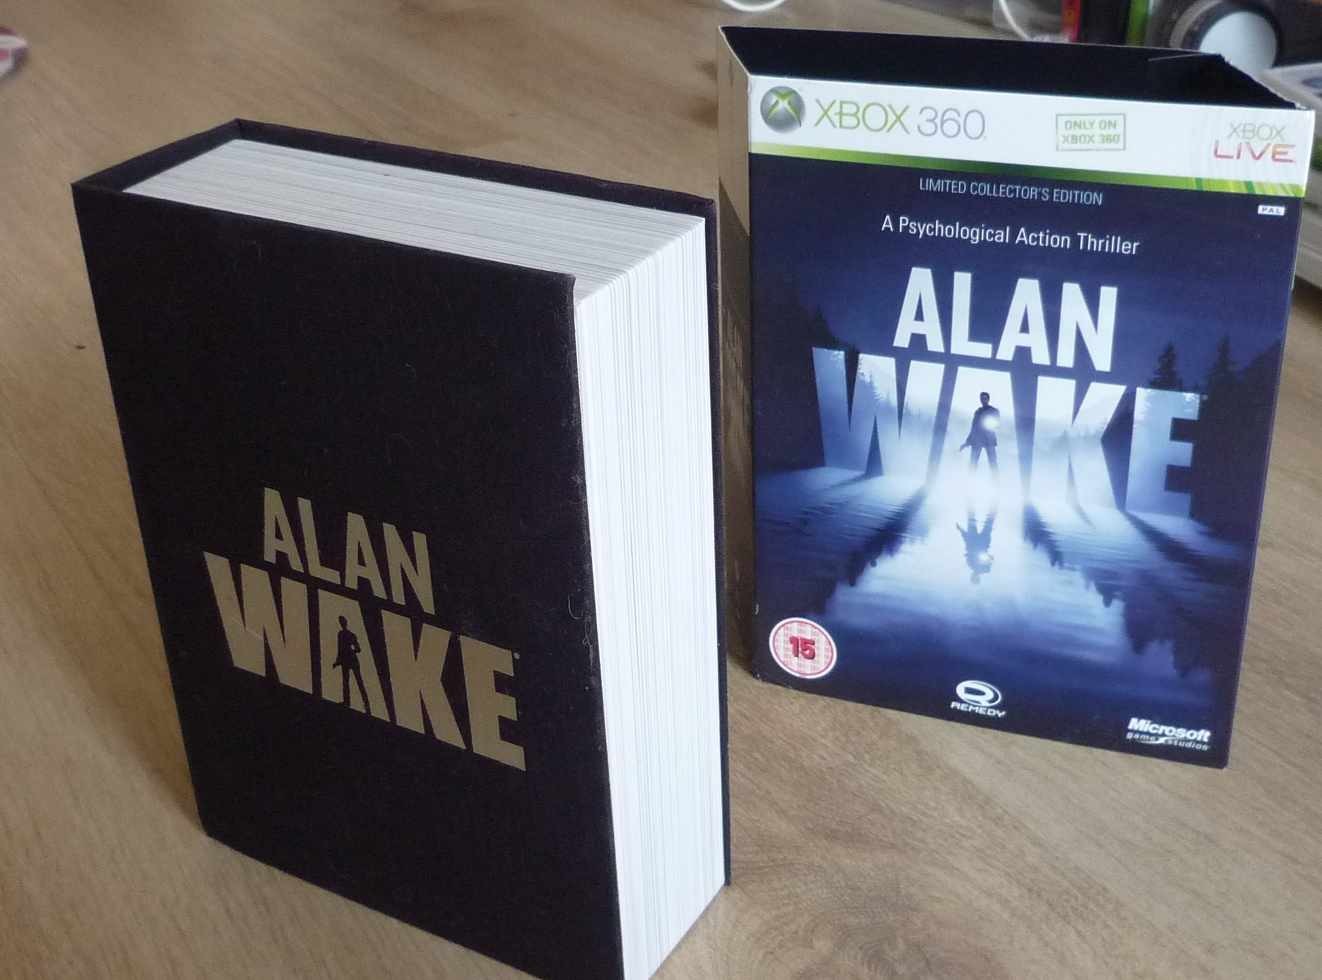 Alan wake ost flac files